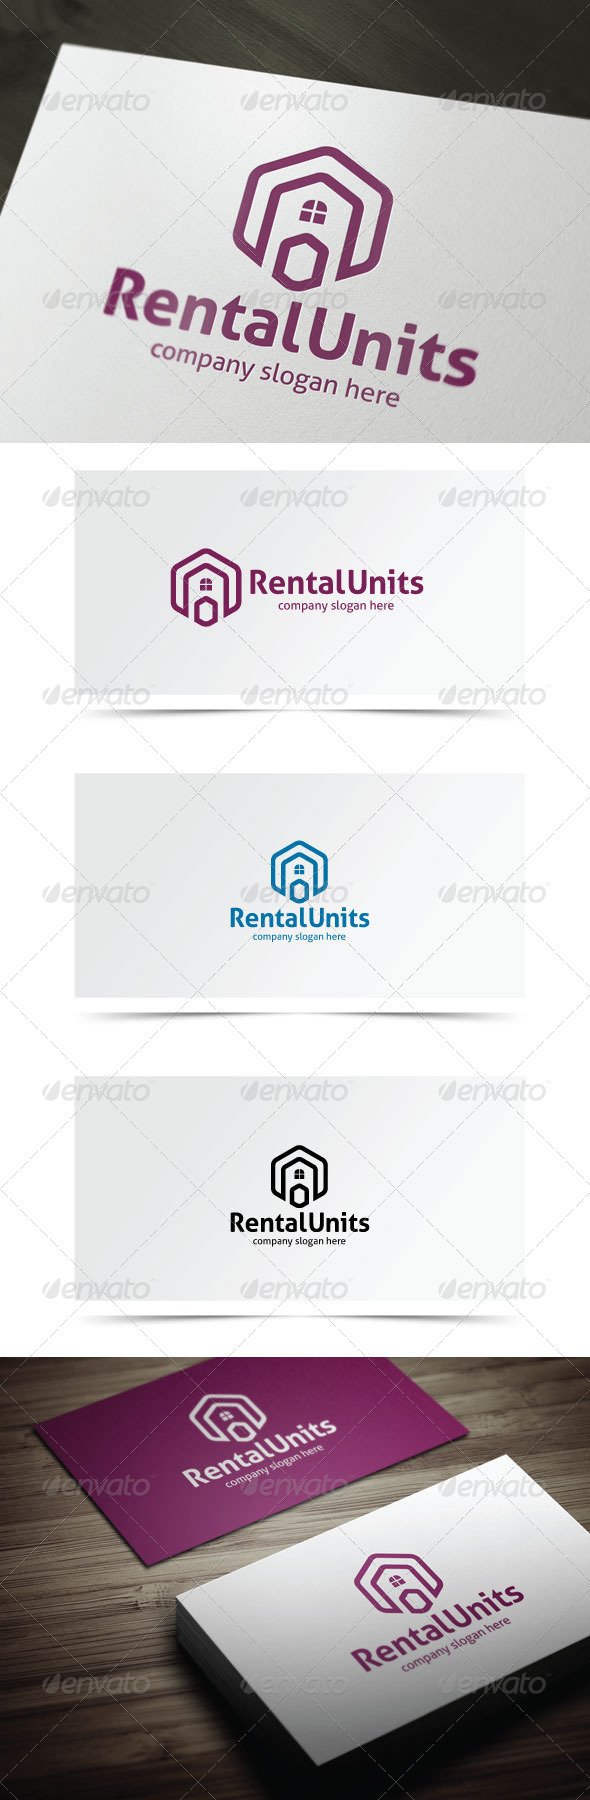 GraphicRiver Rental Units 6828851